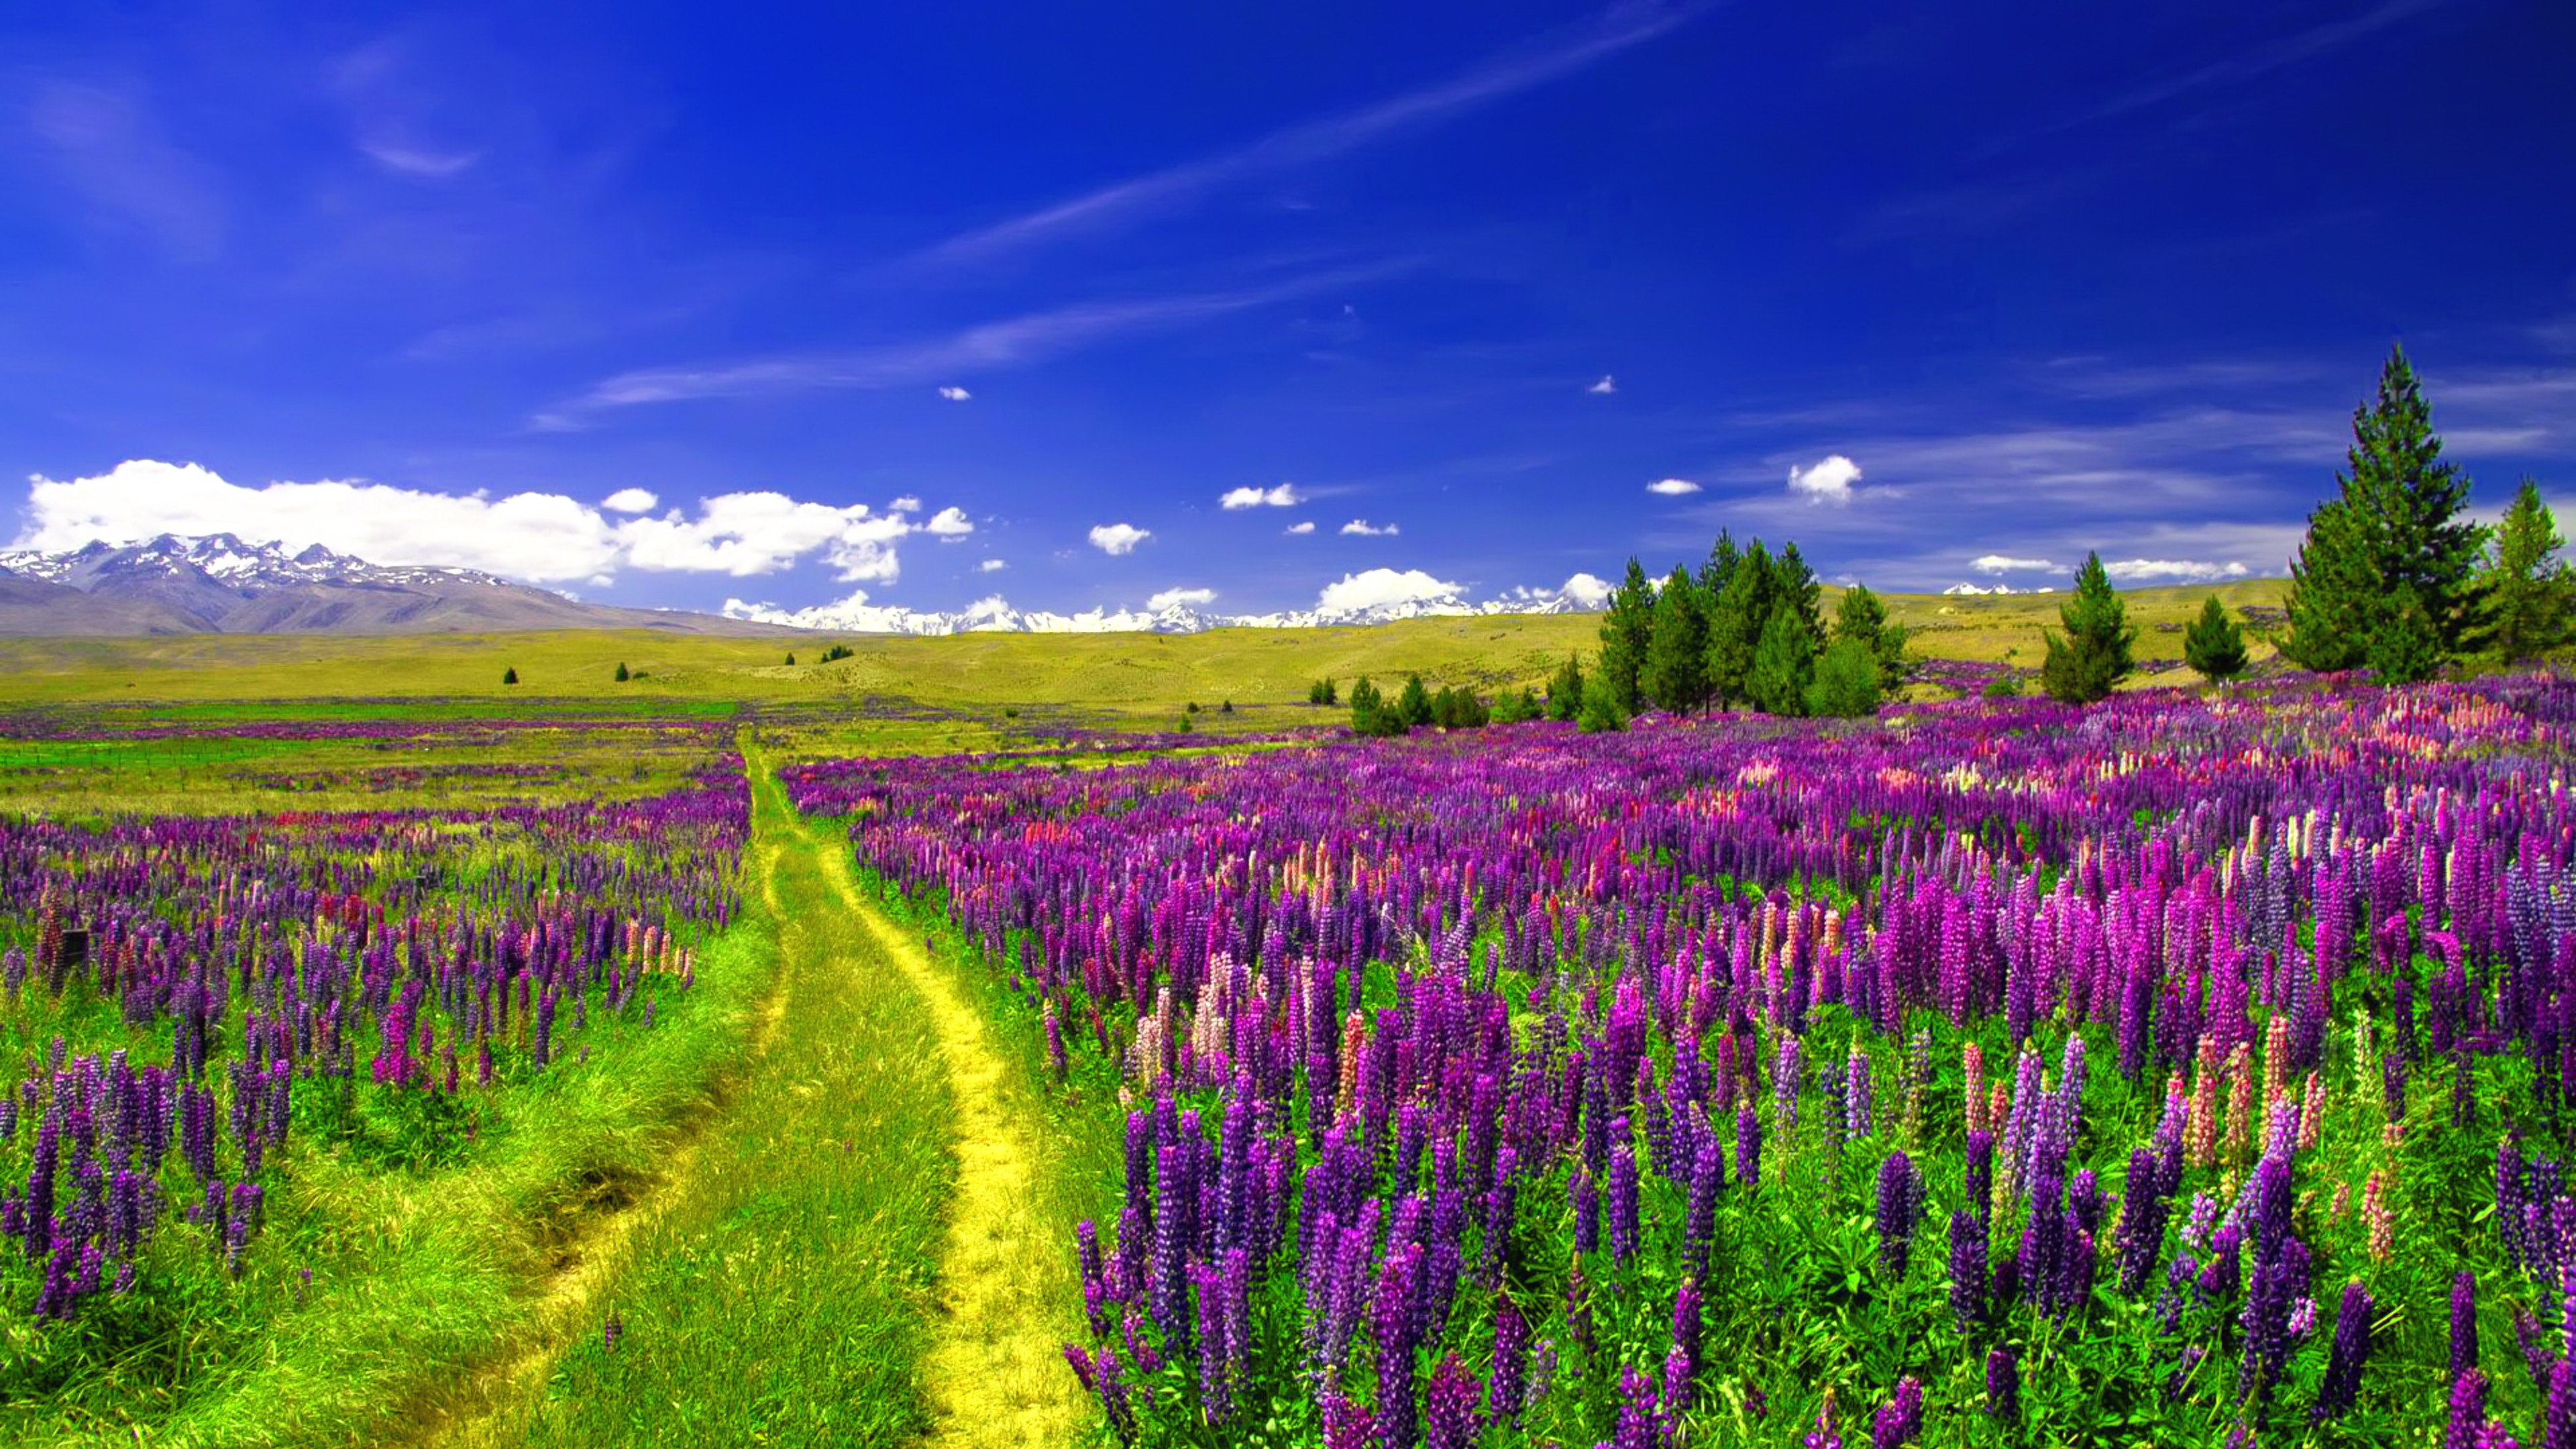 Path in Lupine Field k Ultra HD Wallpaper and Background